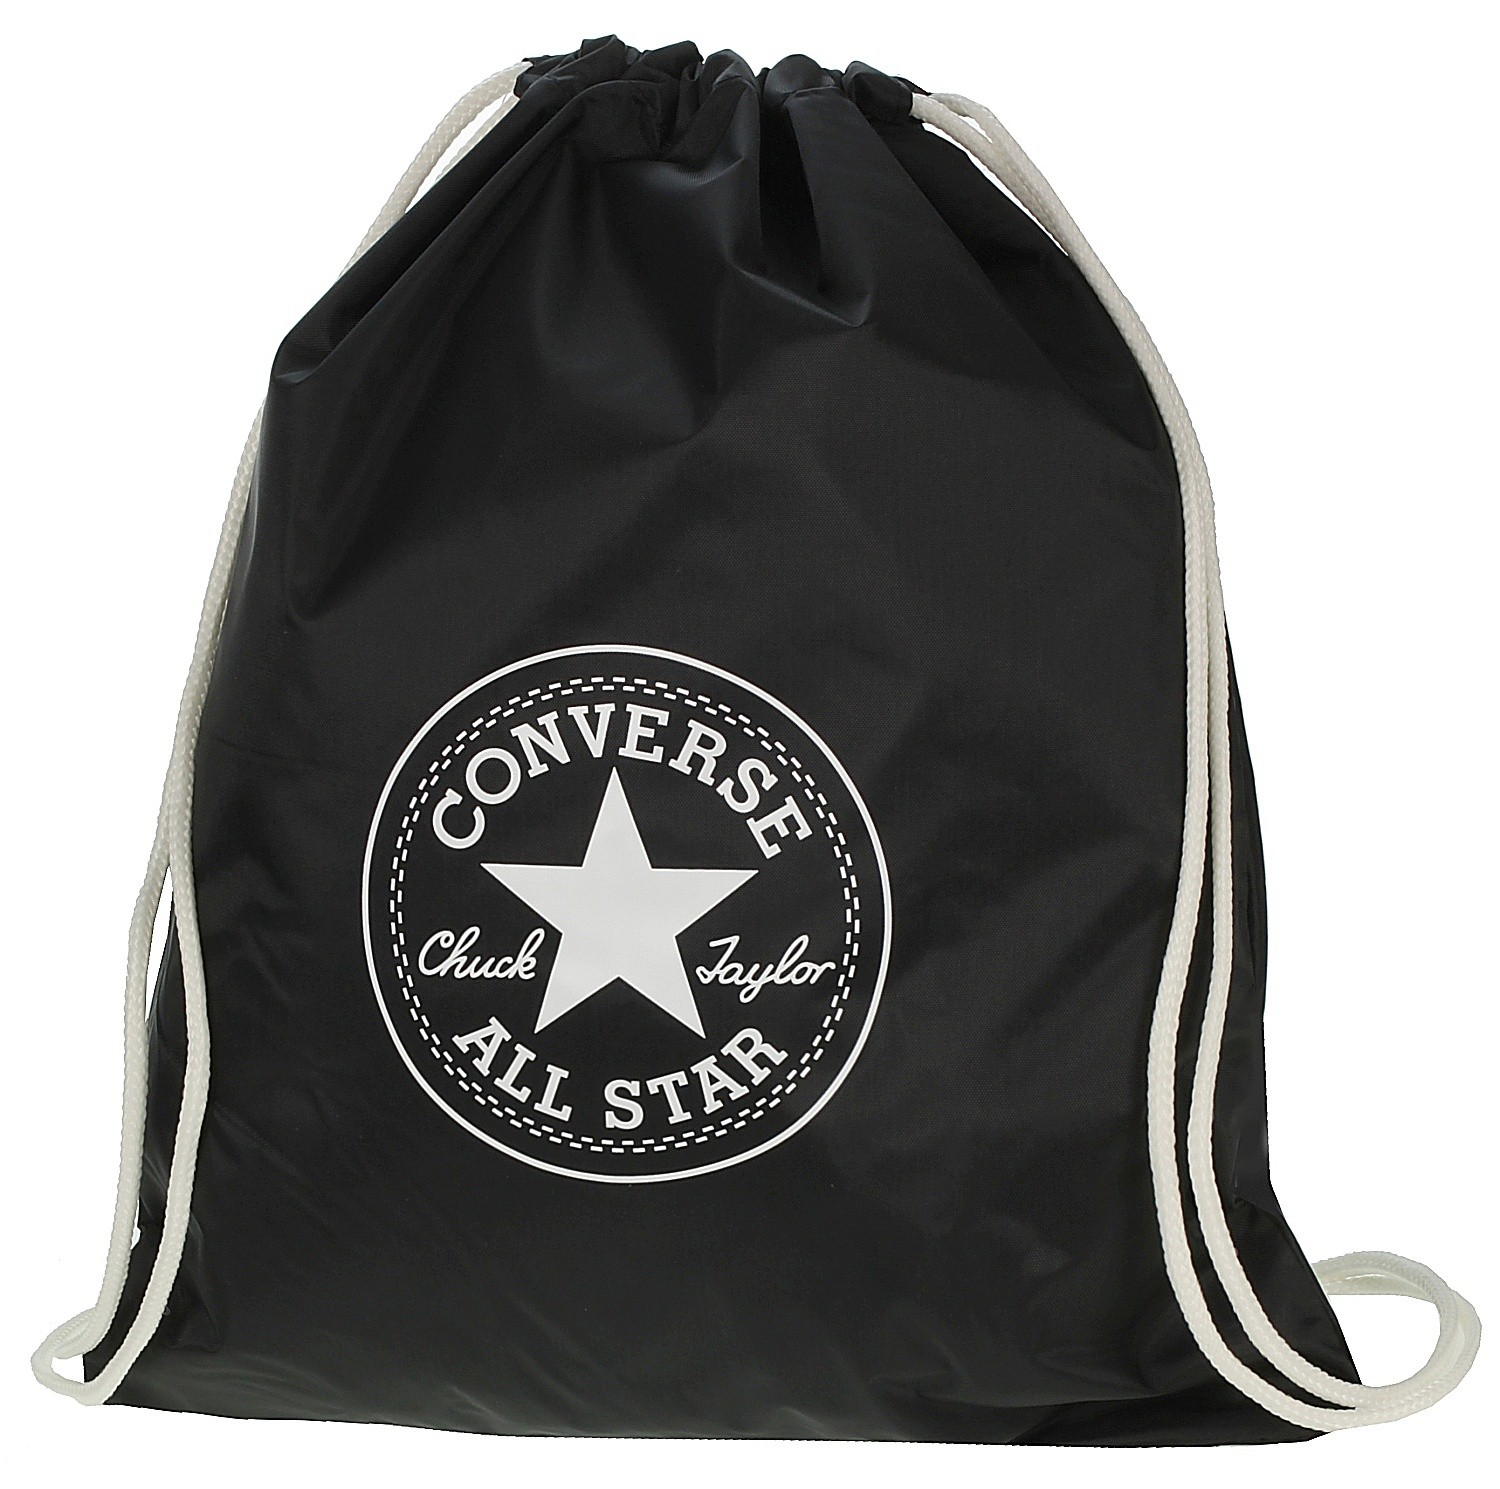 Red White Converse Playmaker Gym Sack Bag